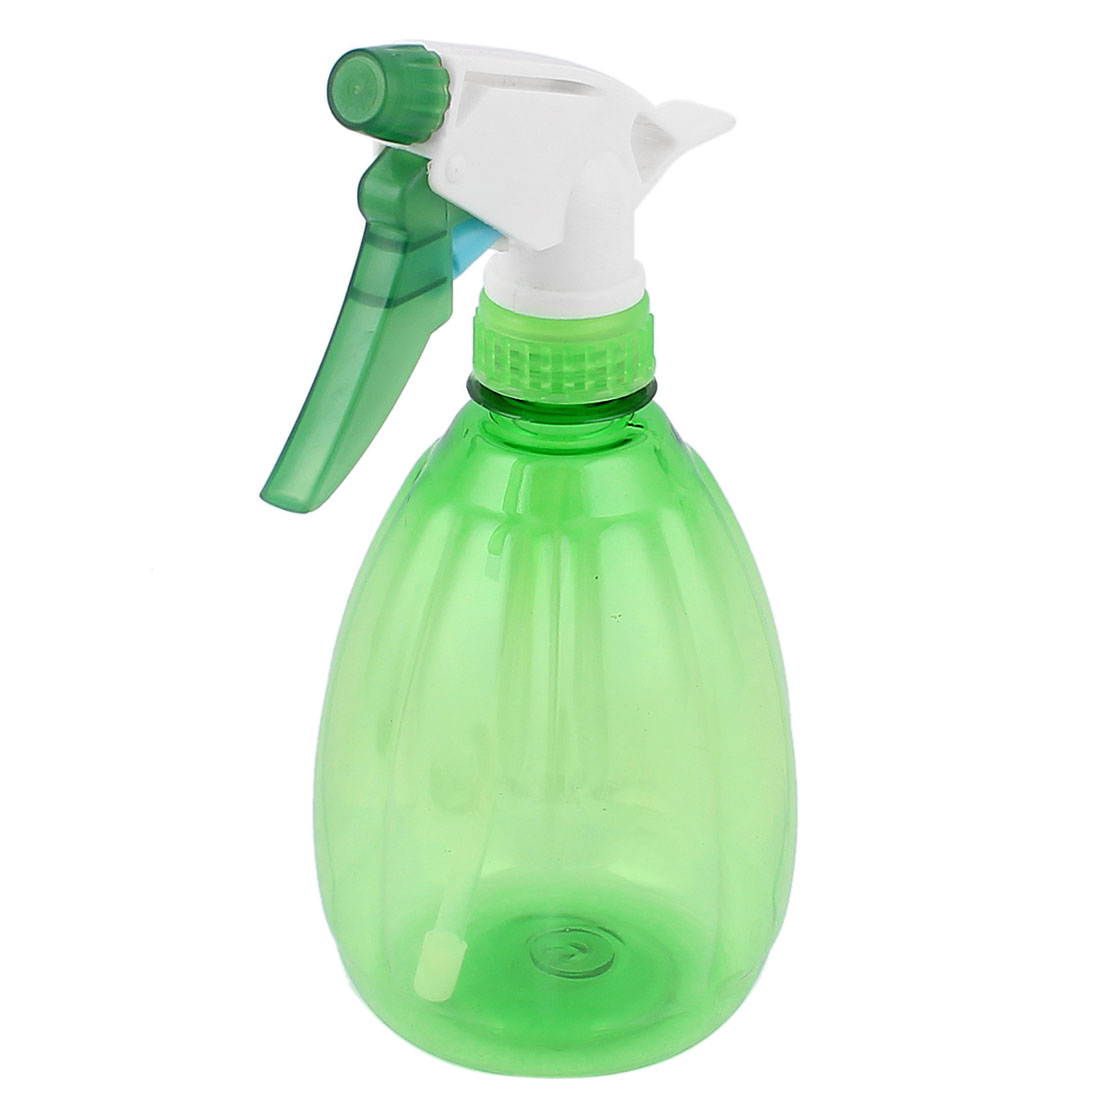 Plastic Nozzle Head Water Sprayer Trigger Spray Bottle Green 500ml